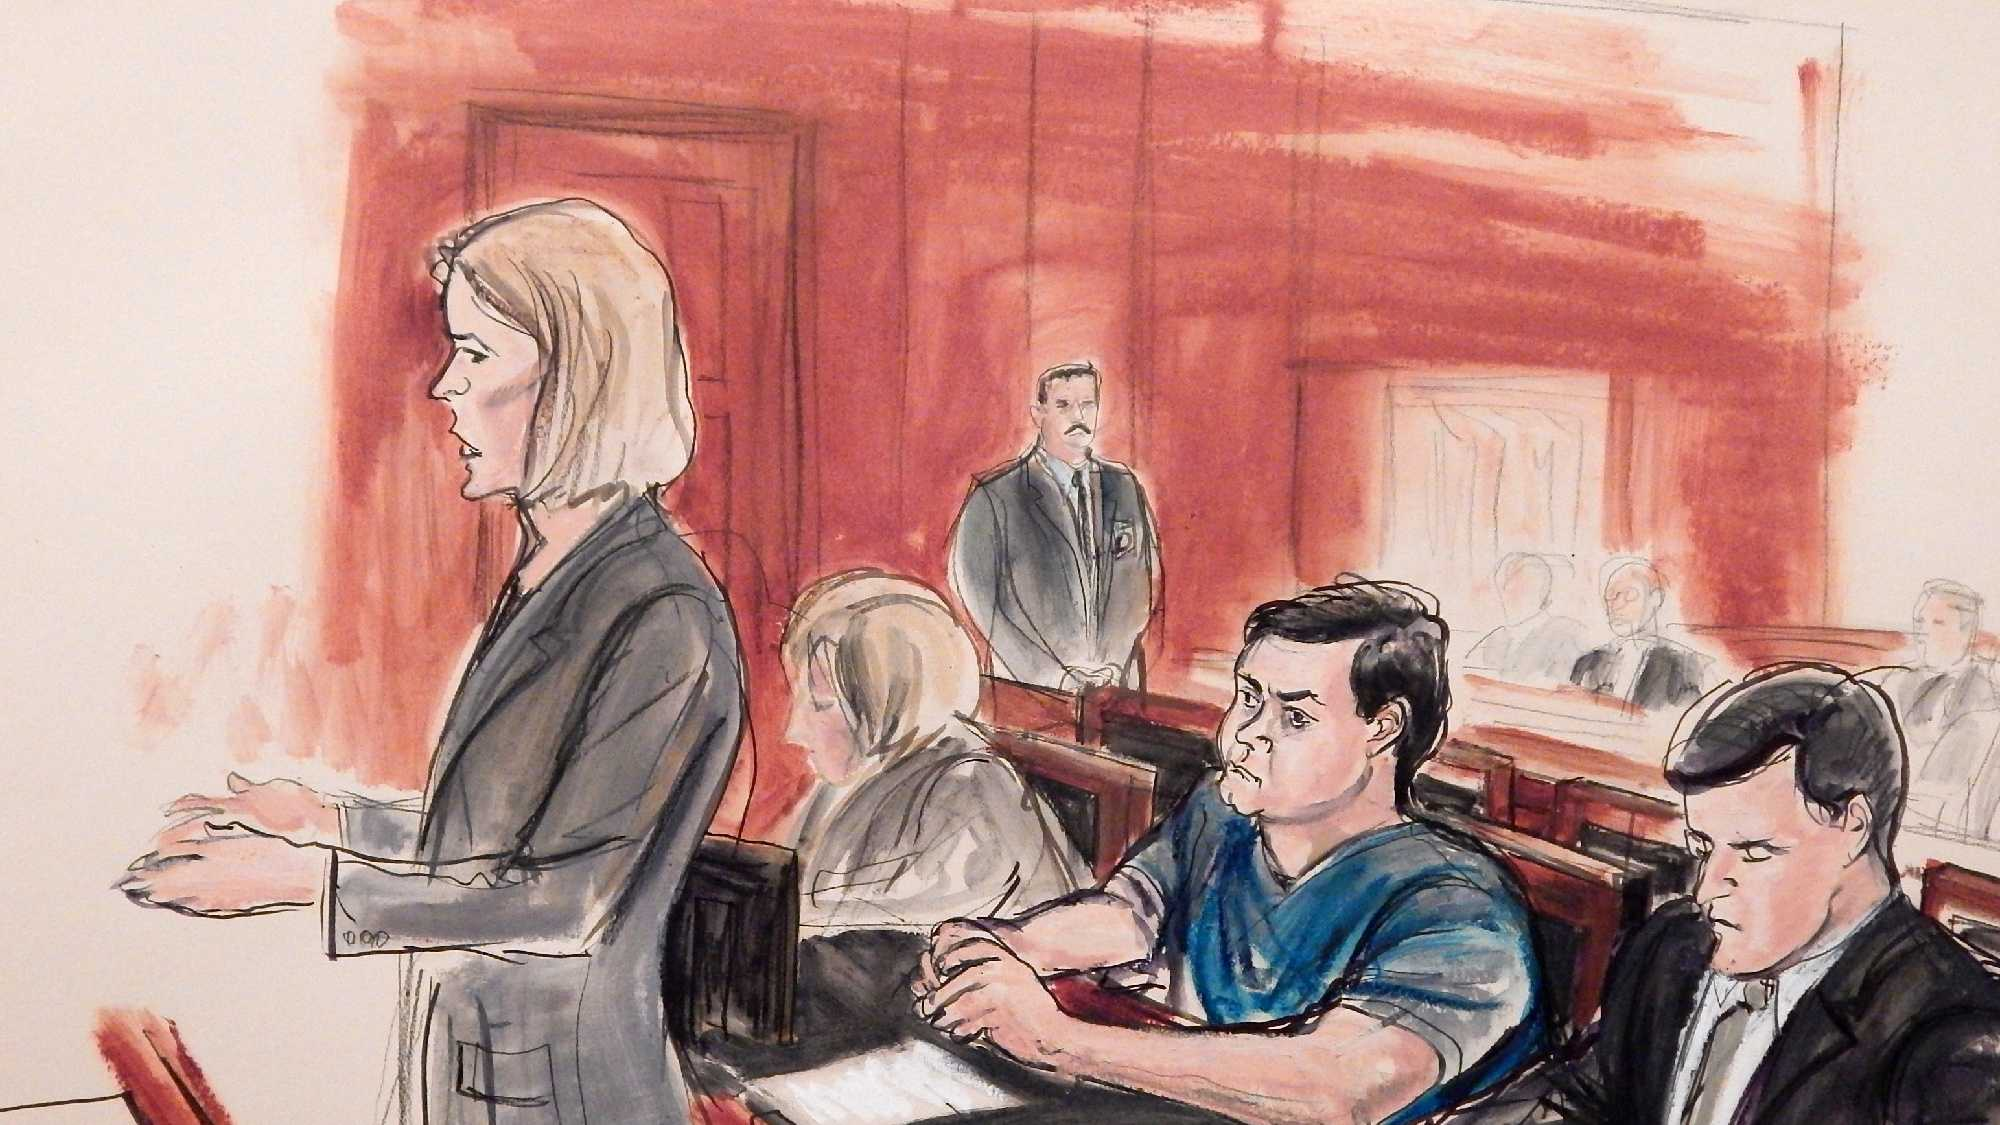 In this Feb. 11, 2015, file courtroom sketch, Assistant U.S. Attorney Anna Skotko, foreground left, addresses the court at the arraignment of Russian citizen Evgeny Buryakov, on charges that he participated in a Cold War-style Russian spy ring in New York. A federal judge refused on Wednesday, July 29 to throw out a spy case against the Russian banker, rejecting arguments that the U.S government was overreaching by prosecuting a defendant who was openly working as an agent of a foreign government. Seated behind Skotko from left are an unidentified Russian interpreter, defendant Evgeny Buryakov and defense attorney Benjamin Naftalis.